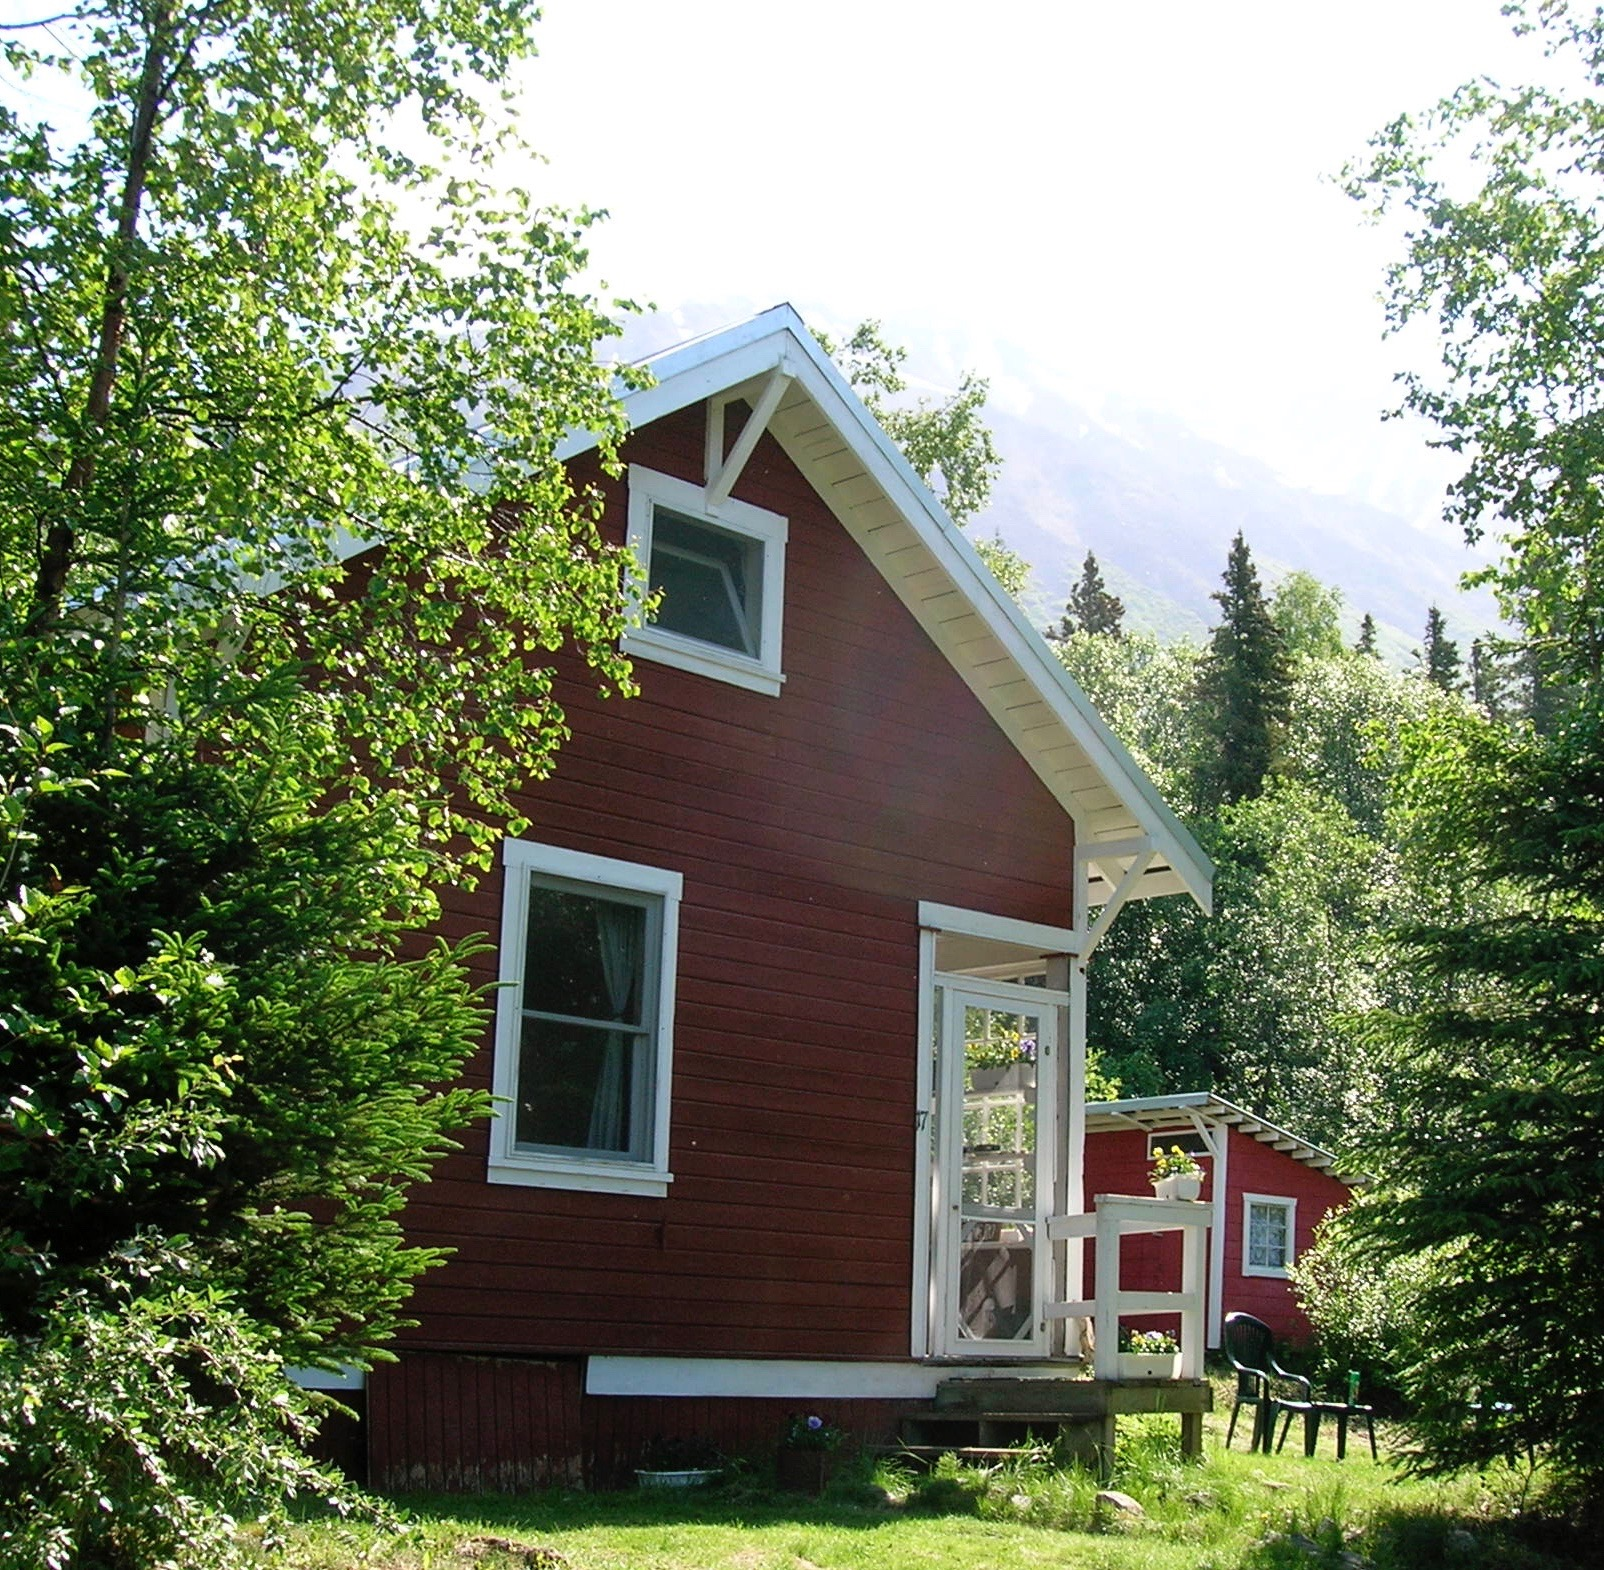 17 Silk Stocking Row in Kennicott, Alaska